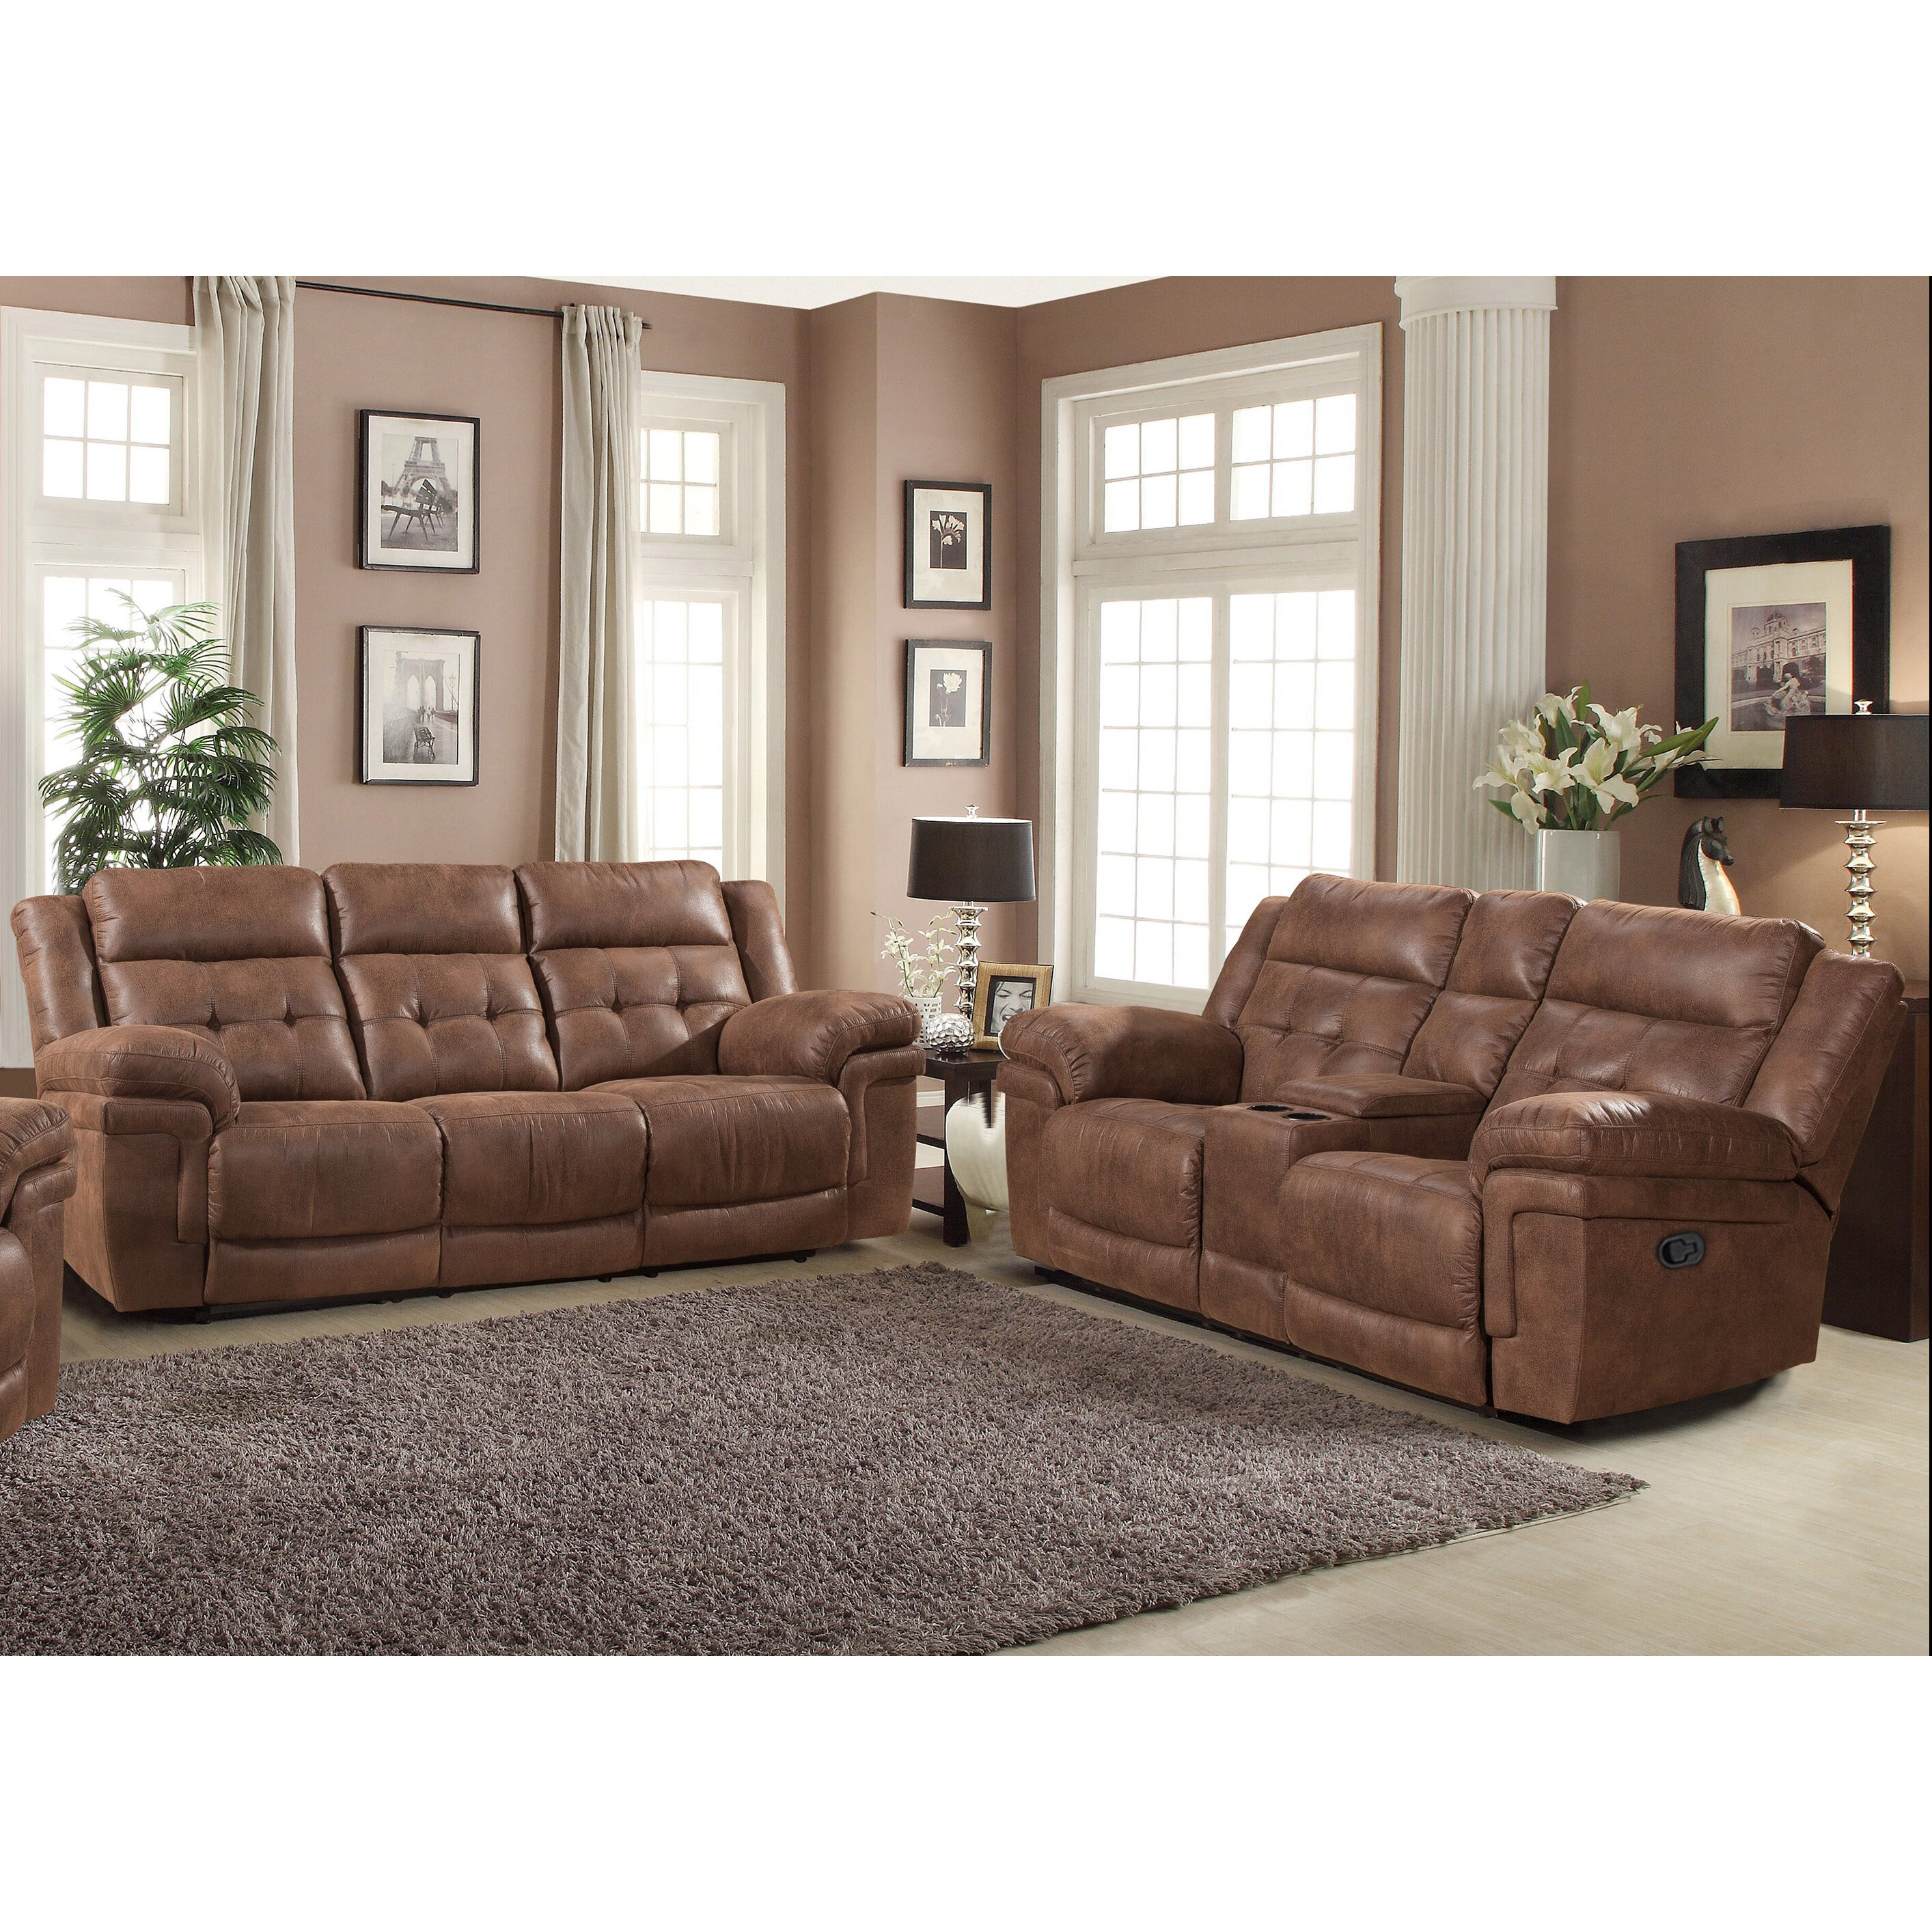 Ac pacific kingston 2 piece living room set